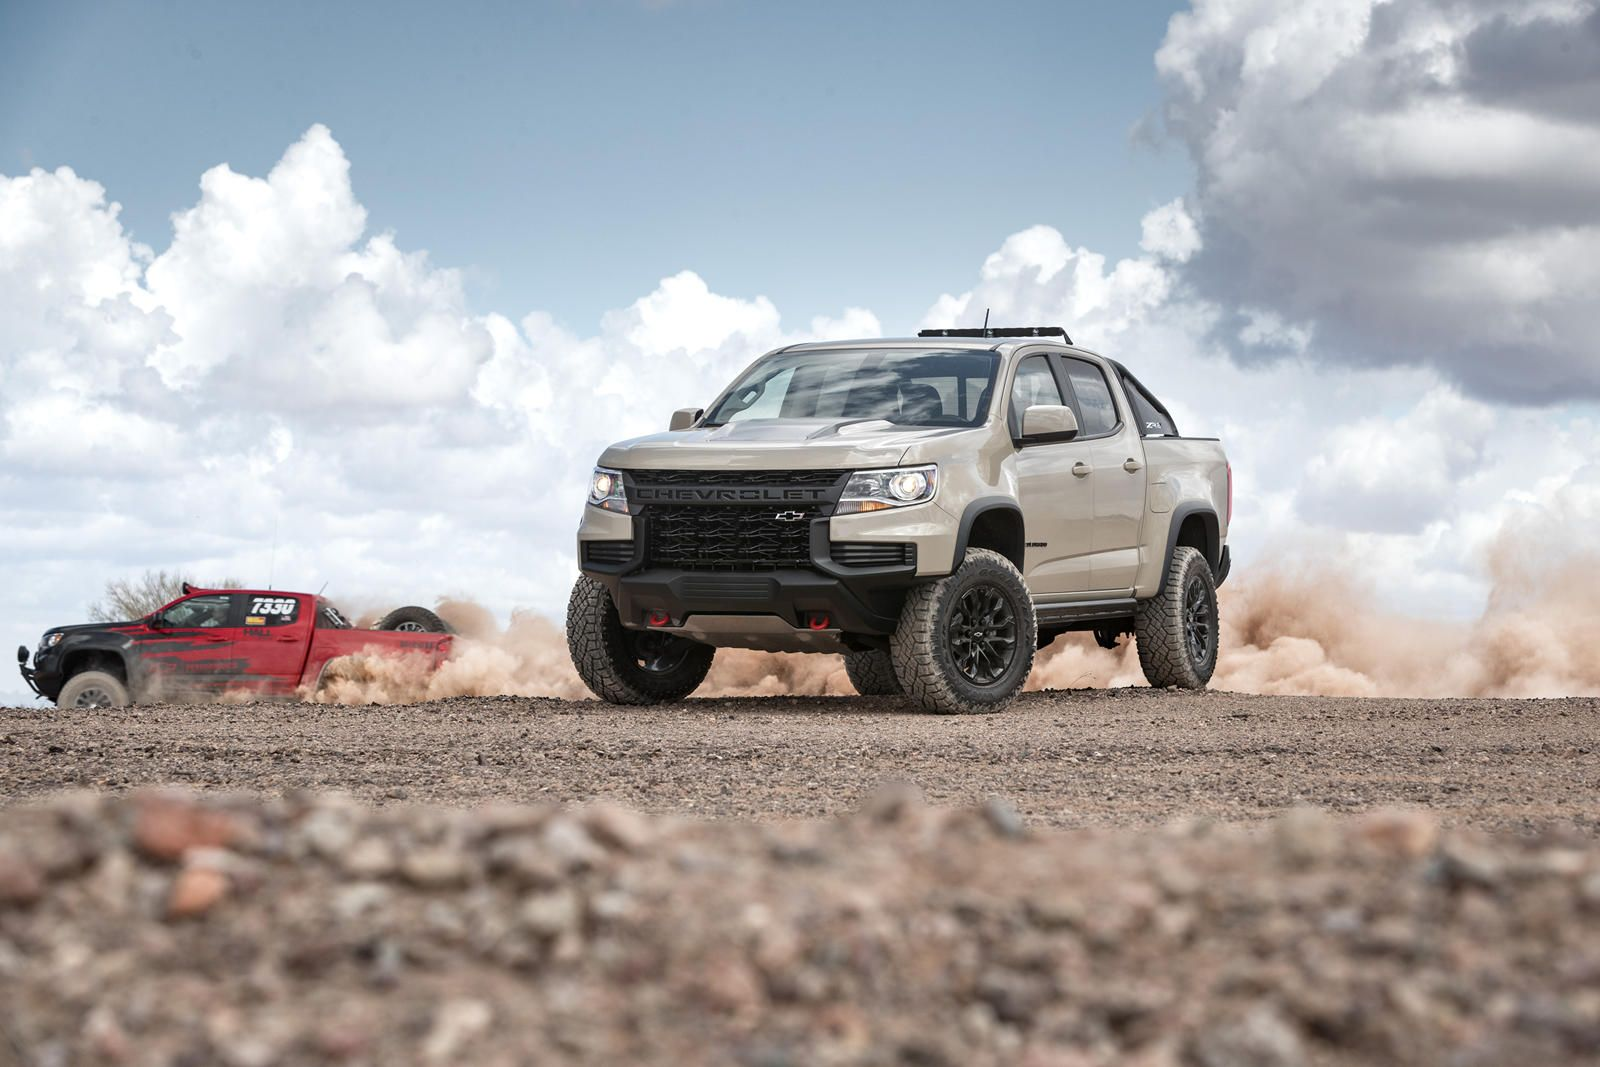 here s how much a fully loaded 2021 chevrolet colorado will cost the online configurator for chevrolet s new ford in 2020 chevrolet colorado chevy colorado chevrolet pinterest